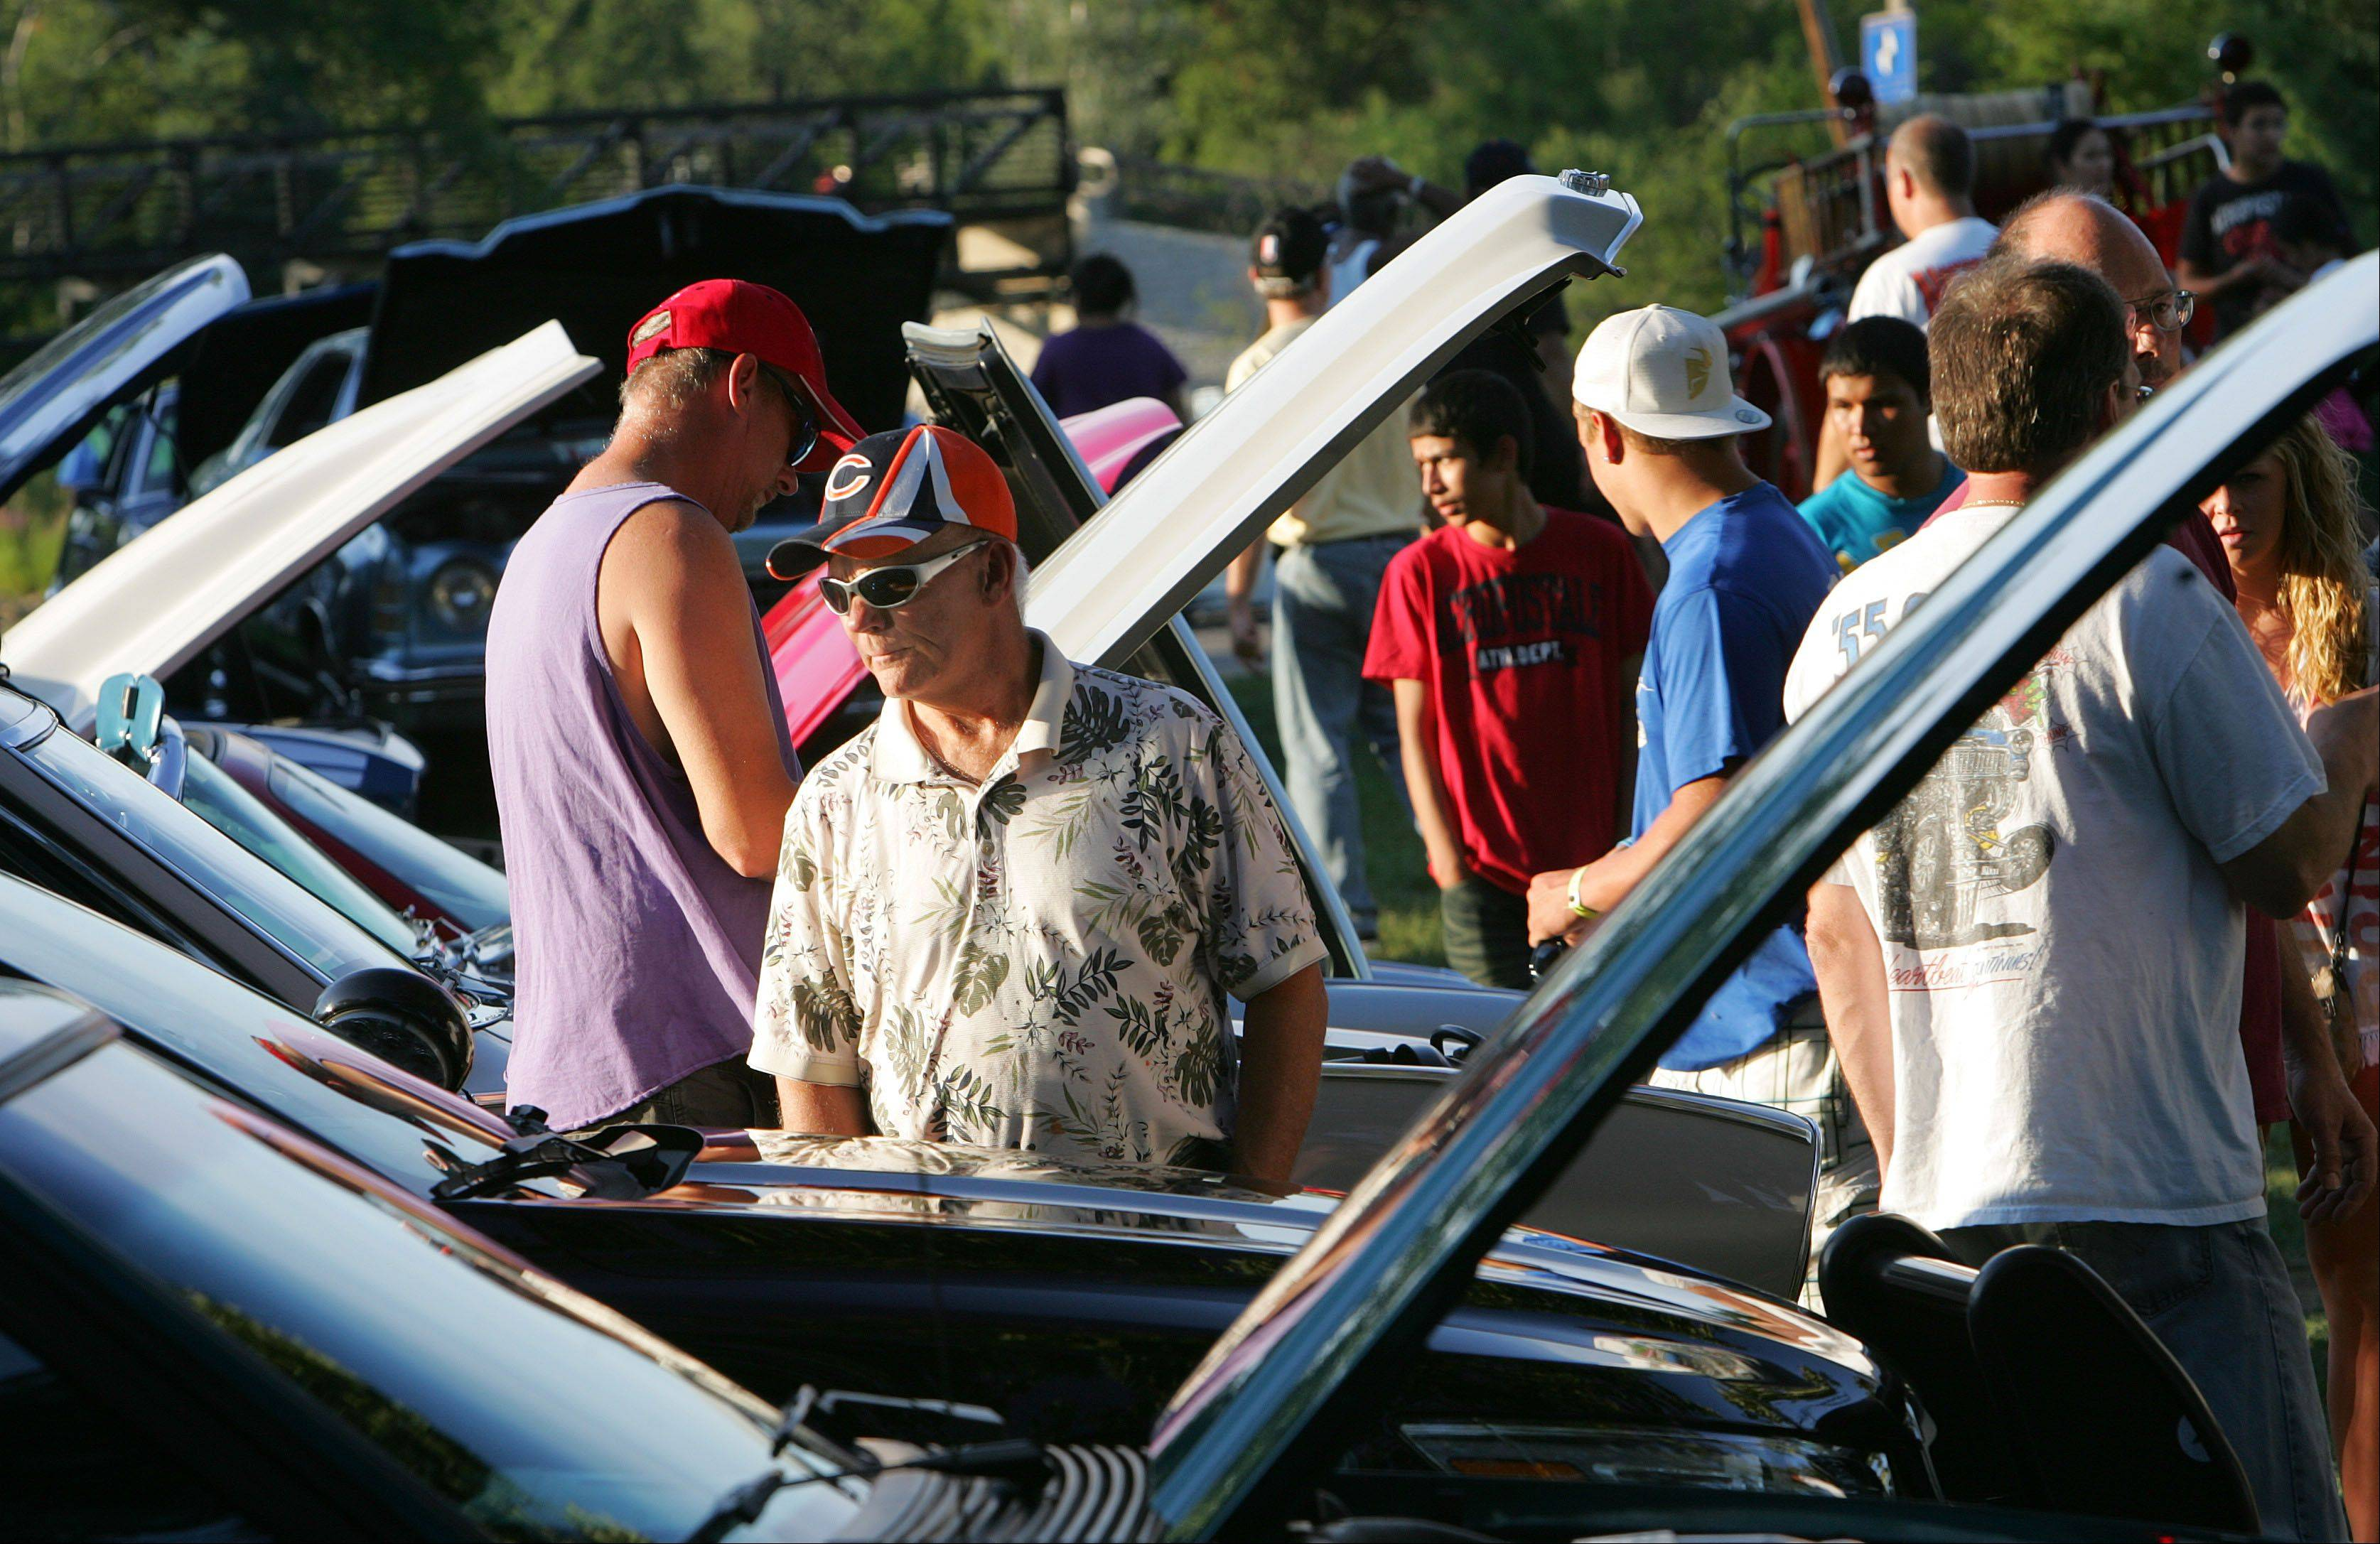 People peruse classic and fancy modern vehicles at a car show during the Round Lake Beach Police Department's National Night Out event at the Round Lake Beach lakefront Tuesday.